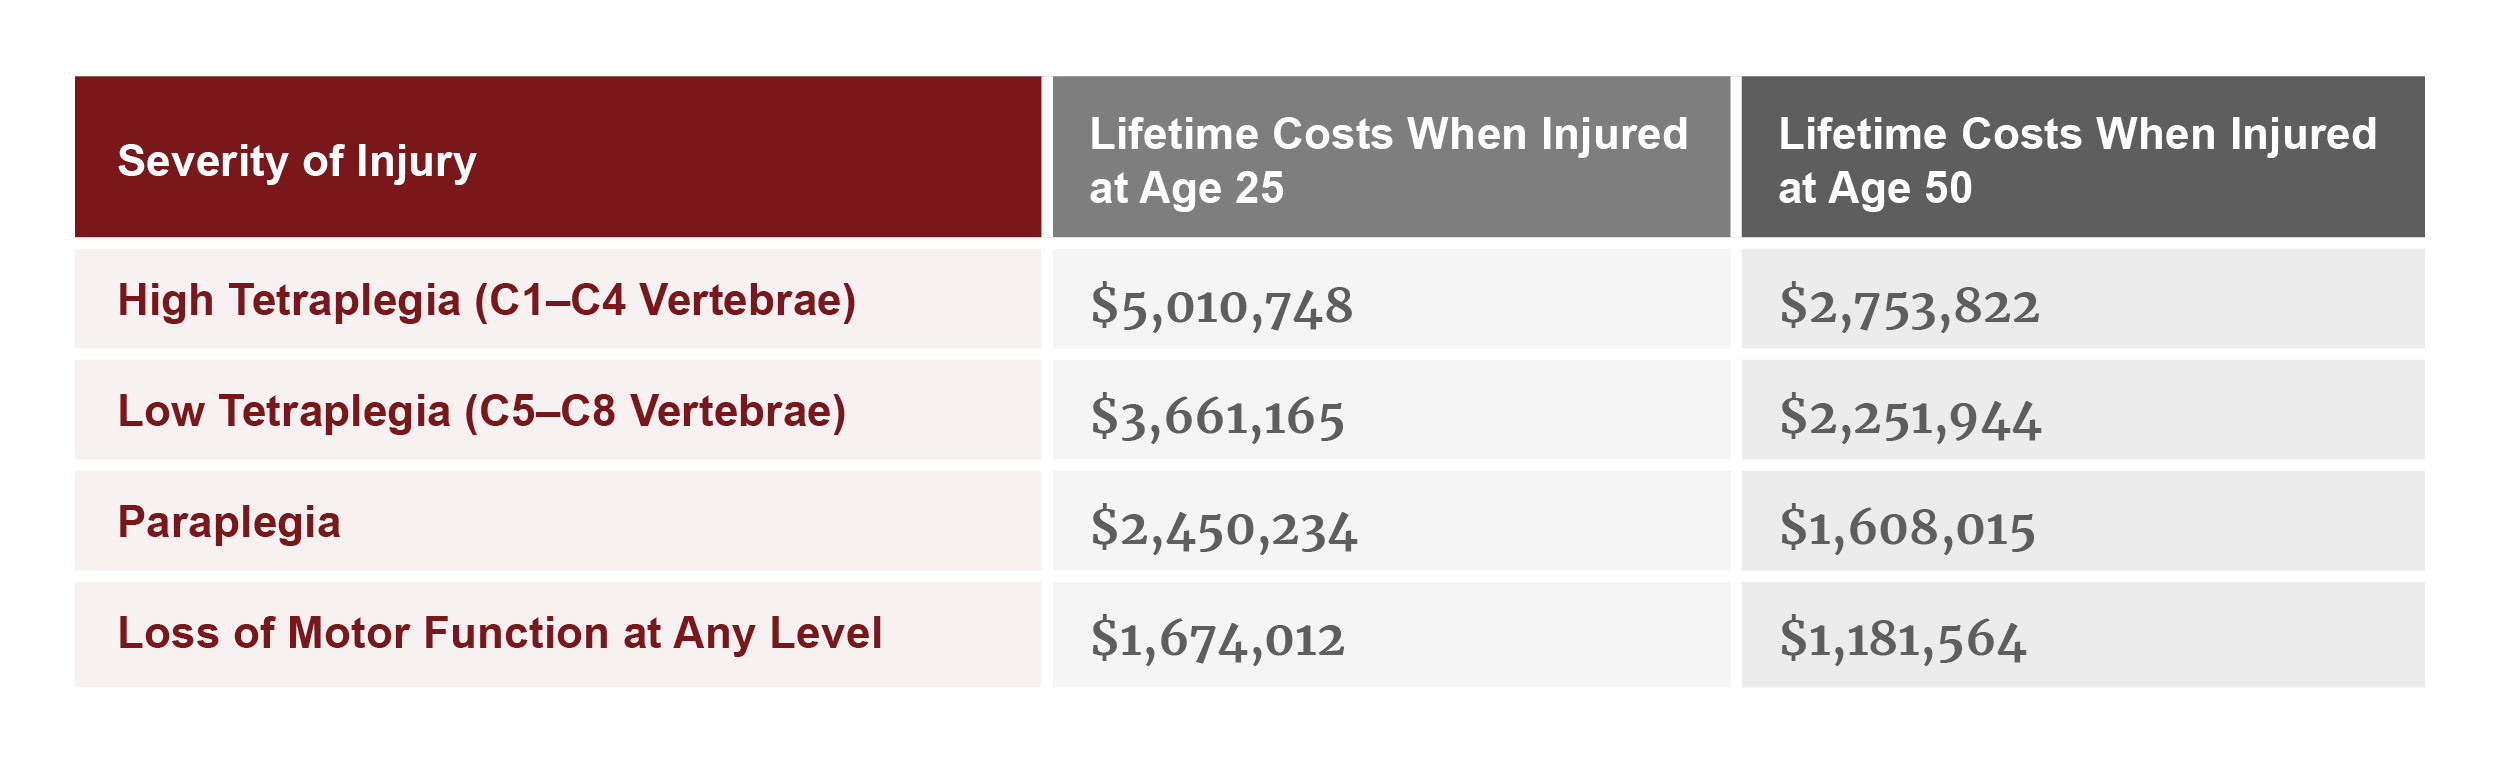 Lifetime cost of spinal cord injury